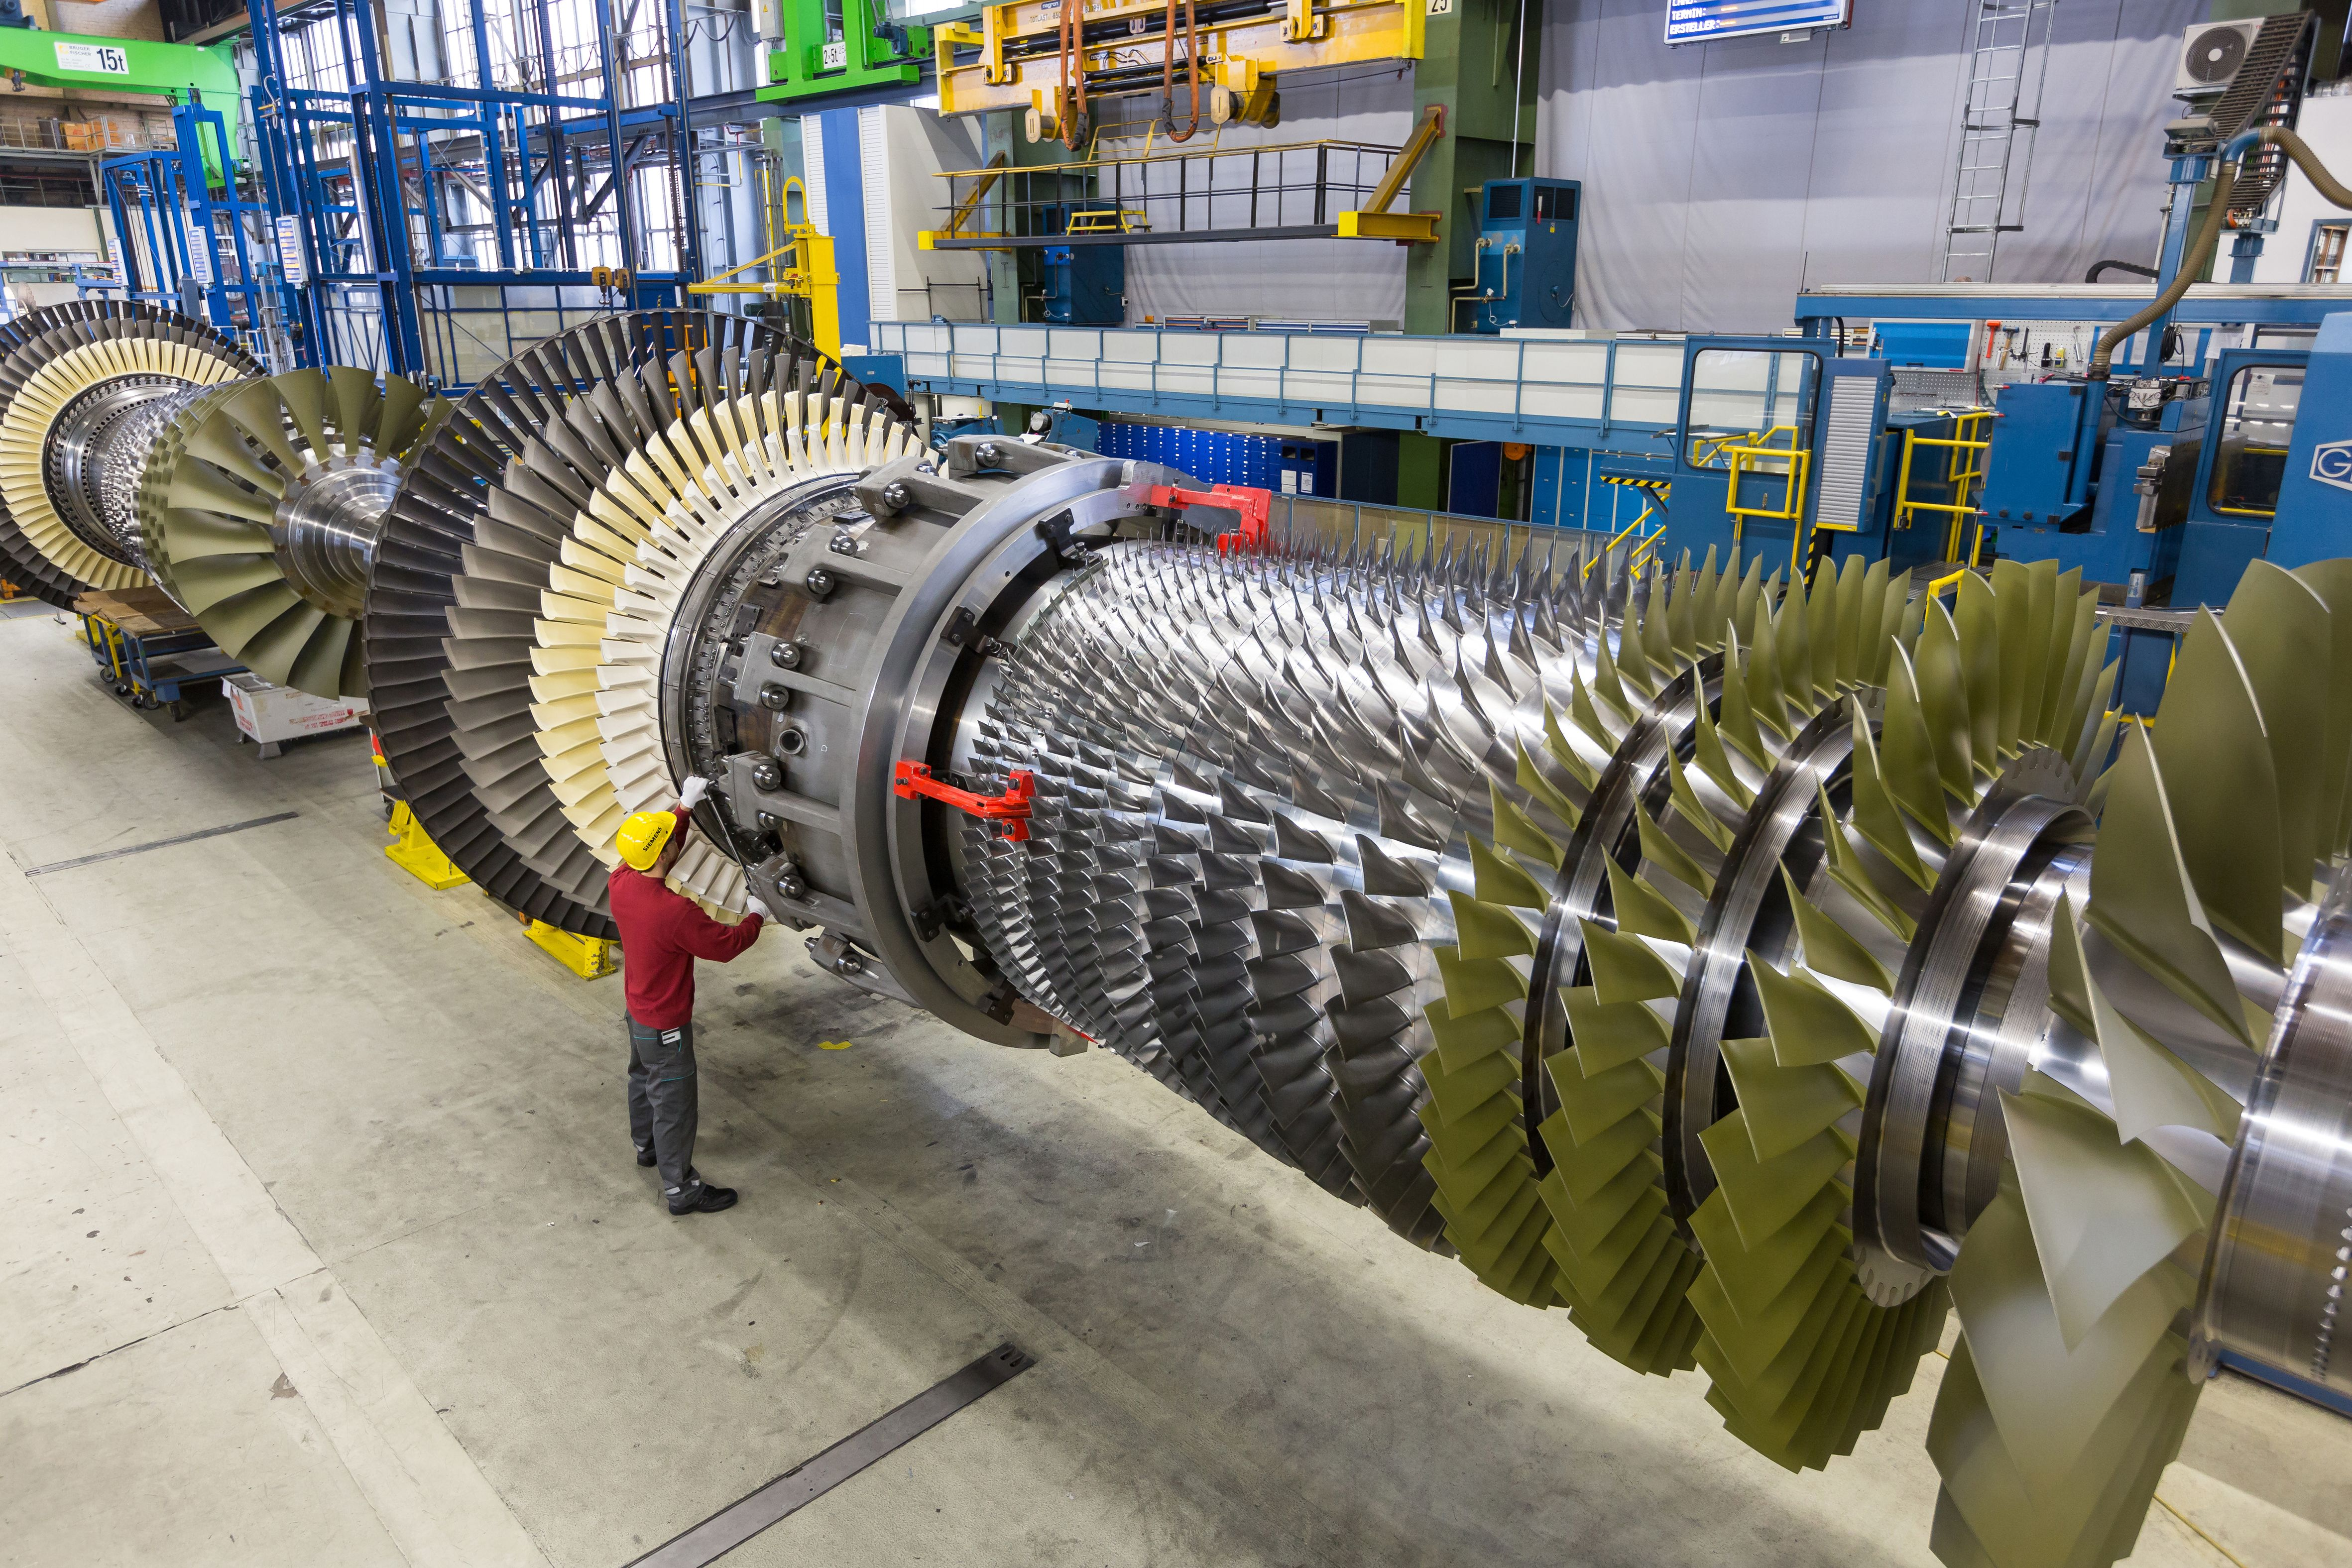 SGT58000H gas turbine in the Siemens assembling halls in